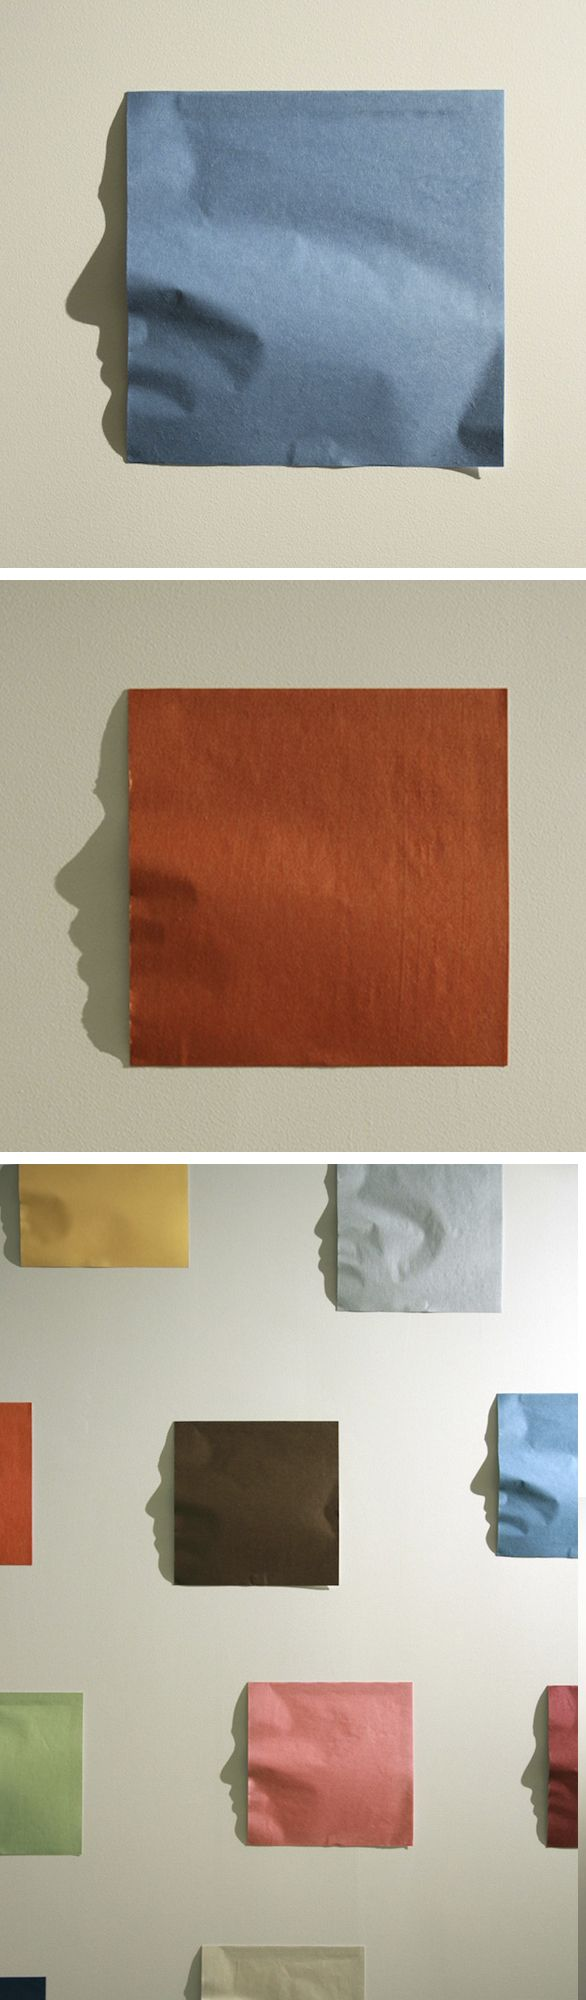 ARTPRIZE!!! Grand Rapids, Michigan. BEST Art Competition...for anyone to join! Paper + Light = Shadow portraits